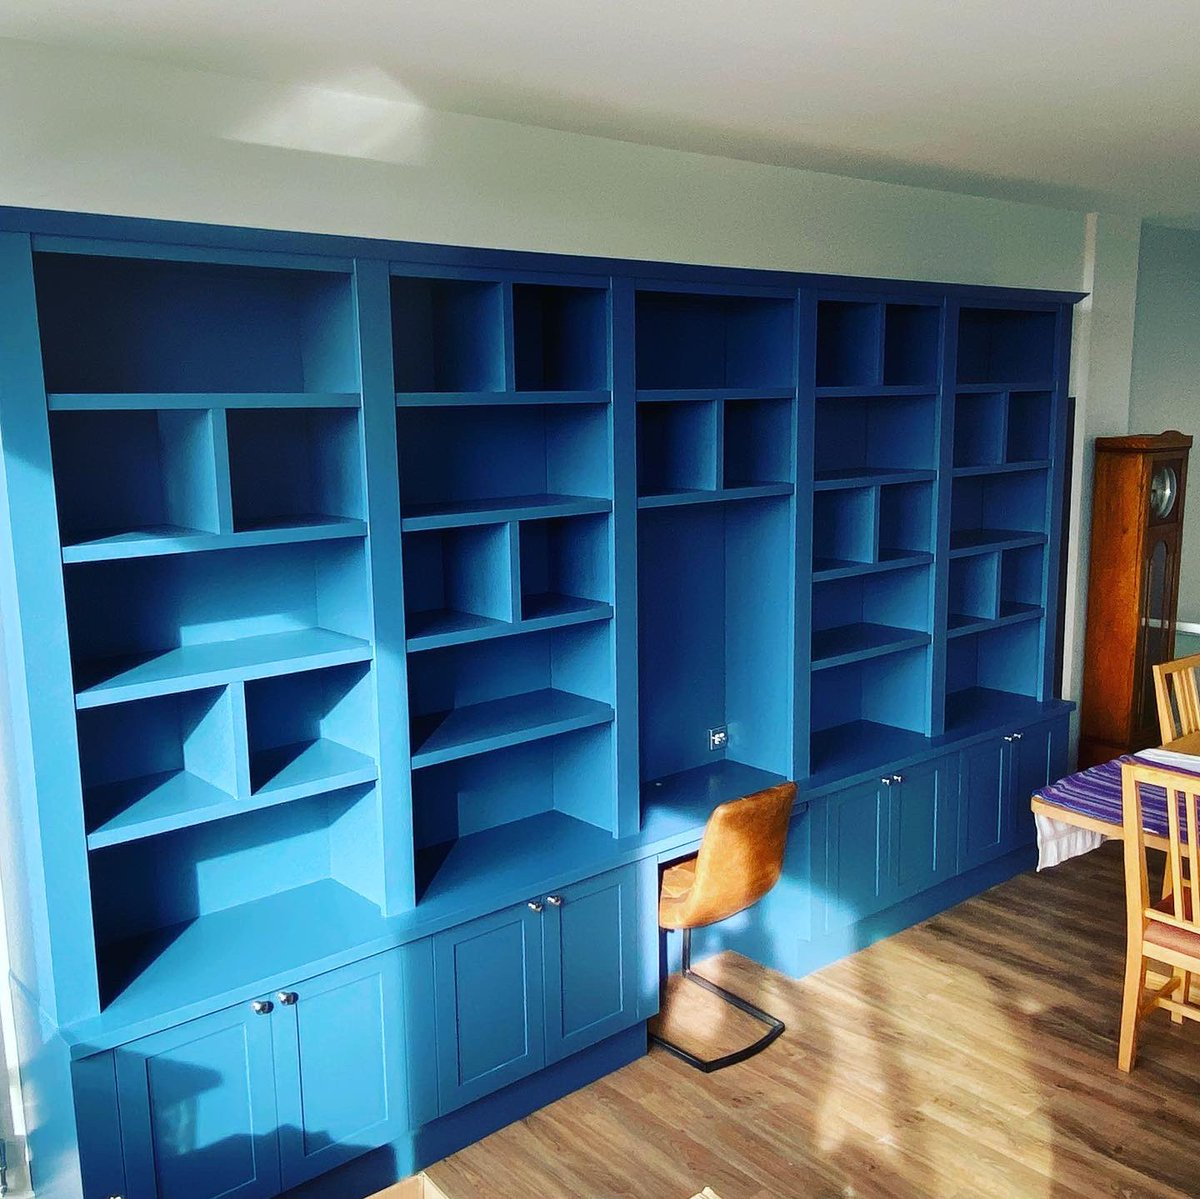 Bookcase and pc desk, just needs filling with books and the LEDs turning on ! #bookcase #joinery #york https://t.co/GV7IIx8u36